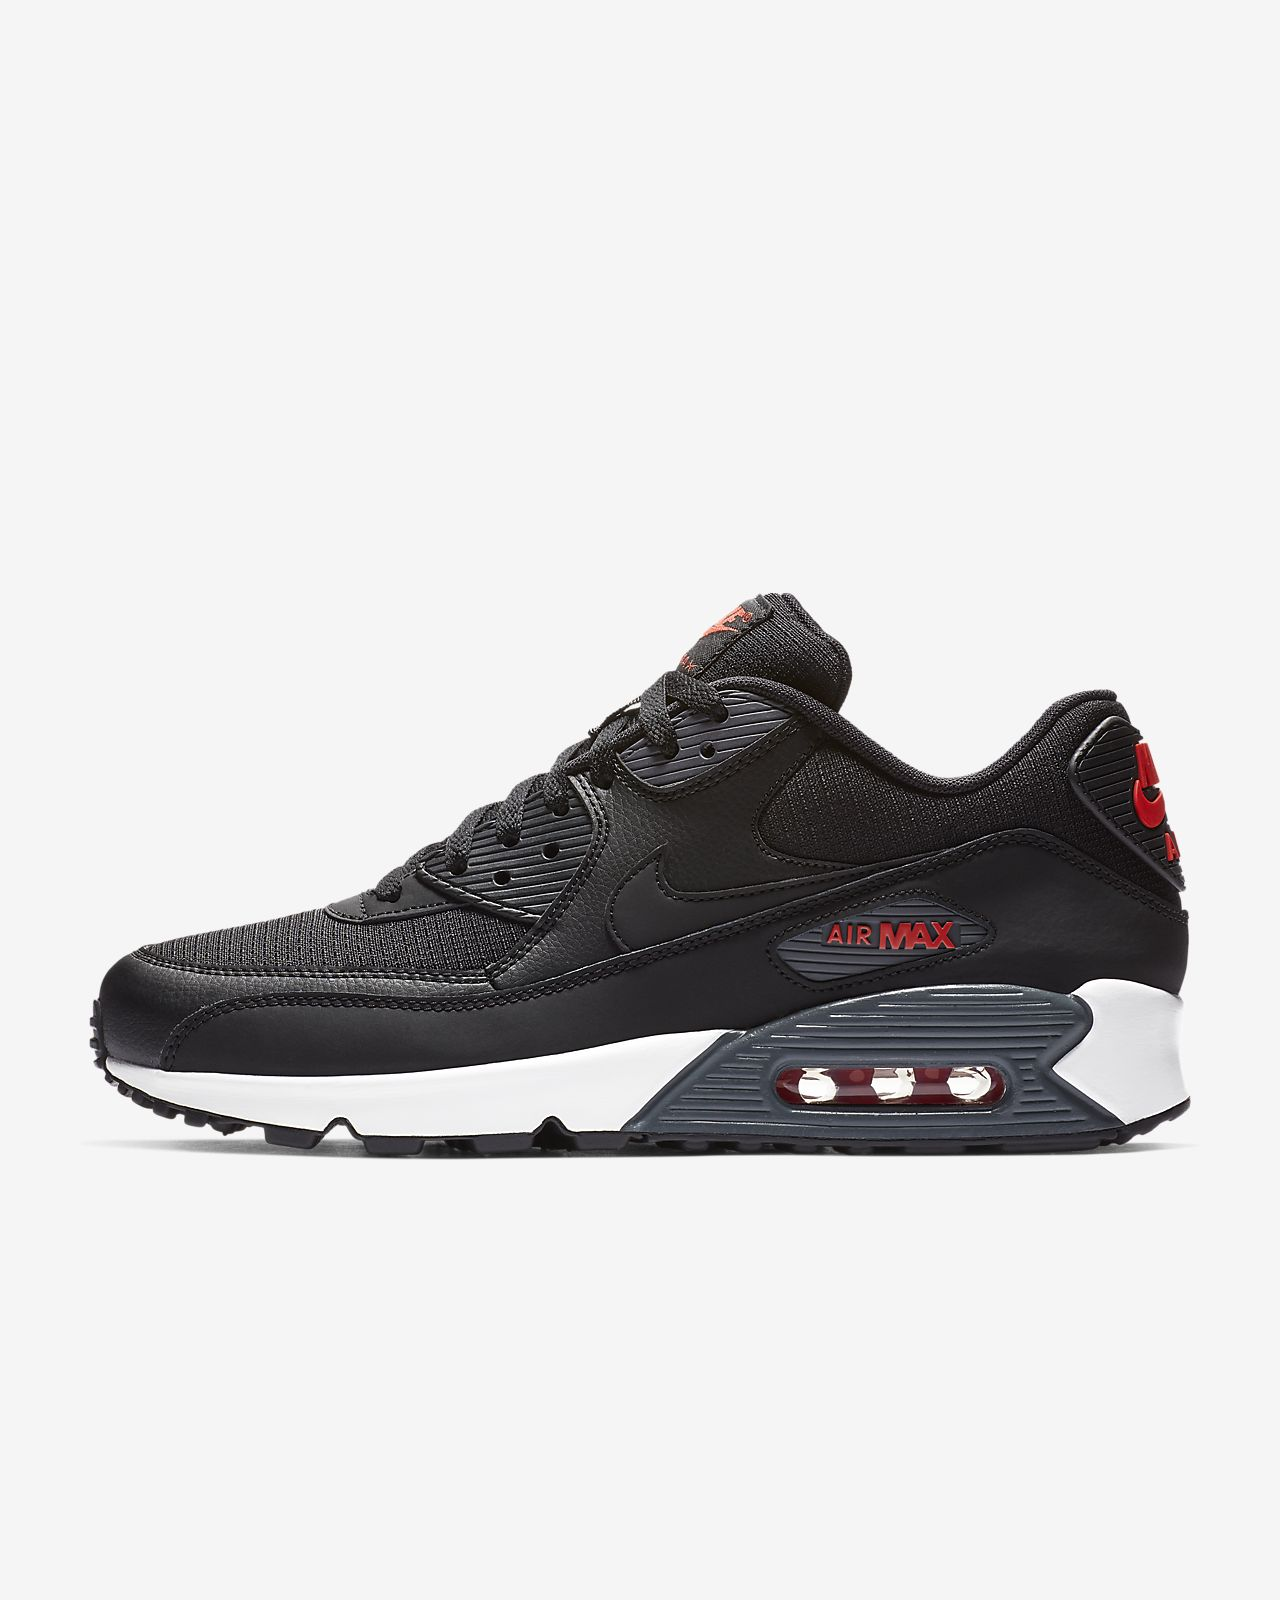 promo code 4a6ff 2306a Men s Shoe. Nike Air Max 90 NS SE